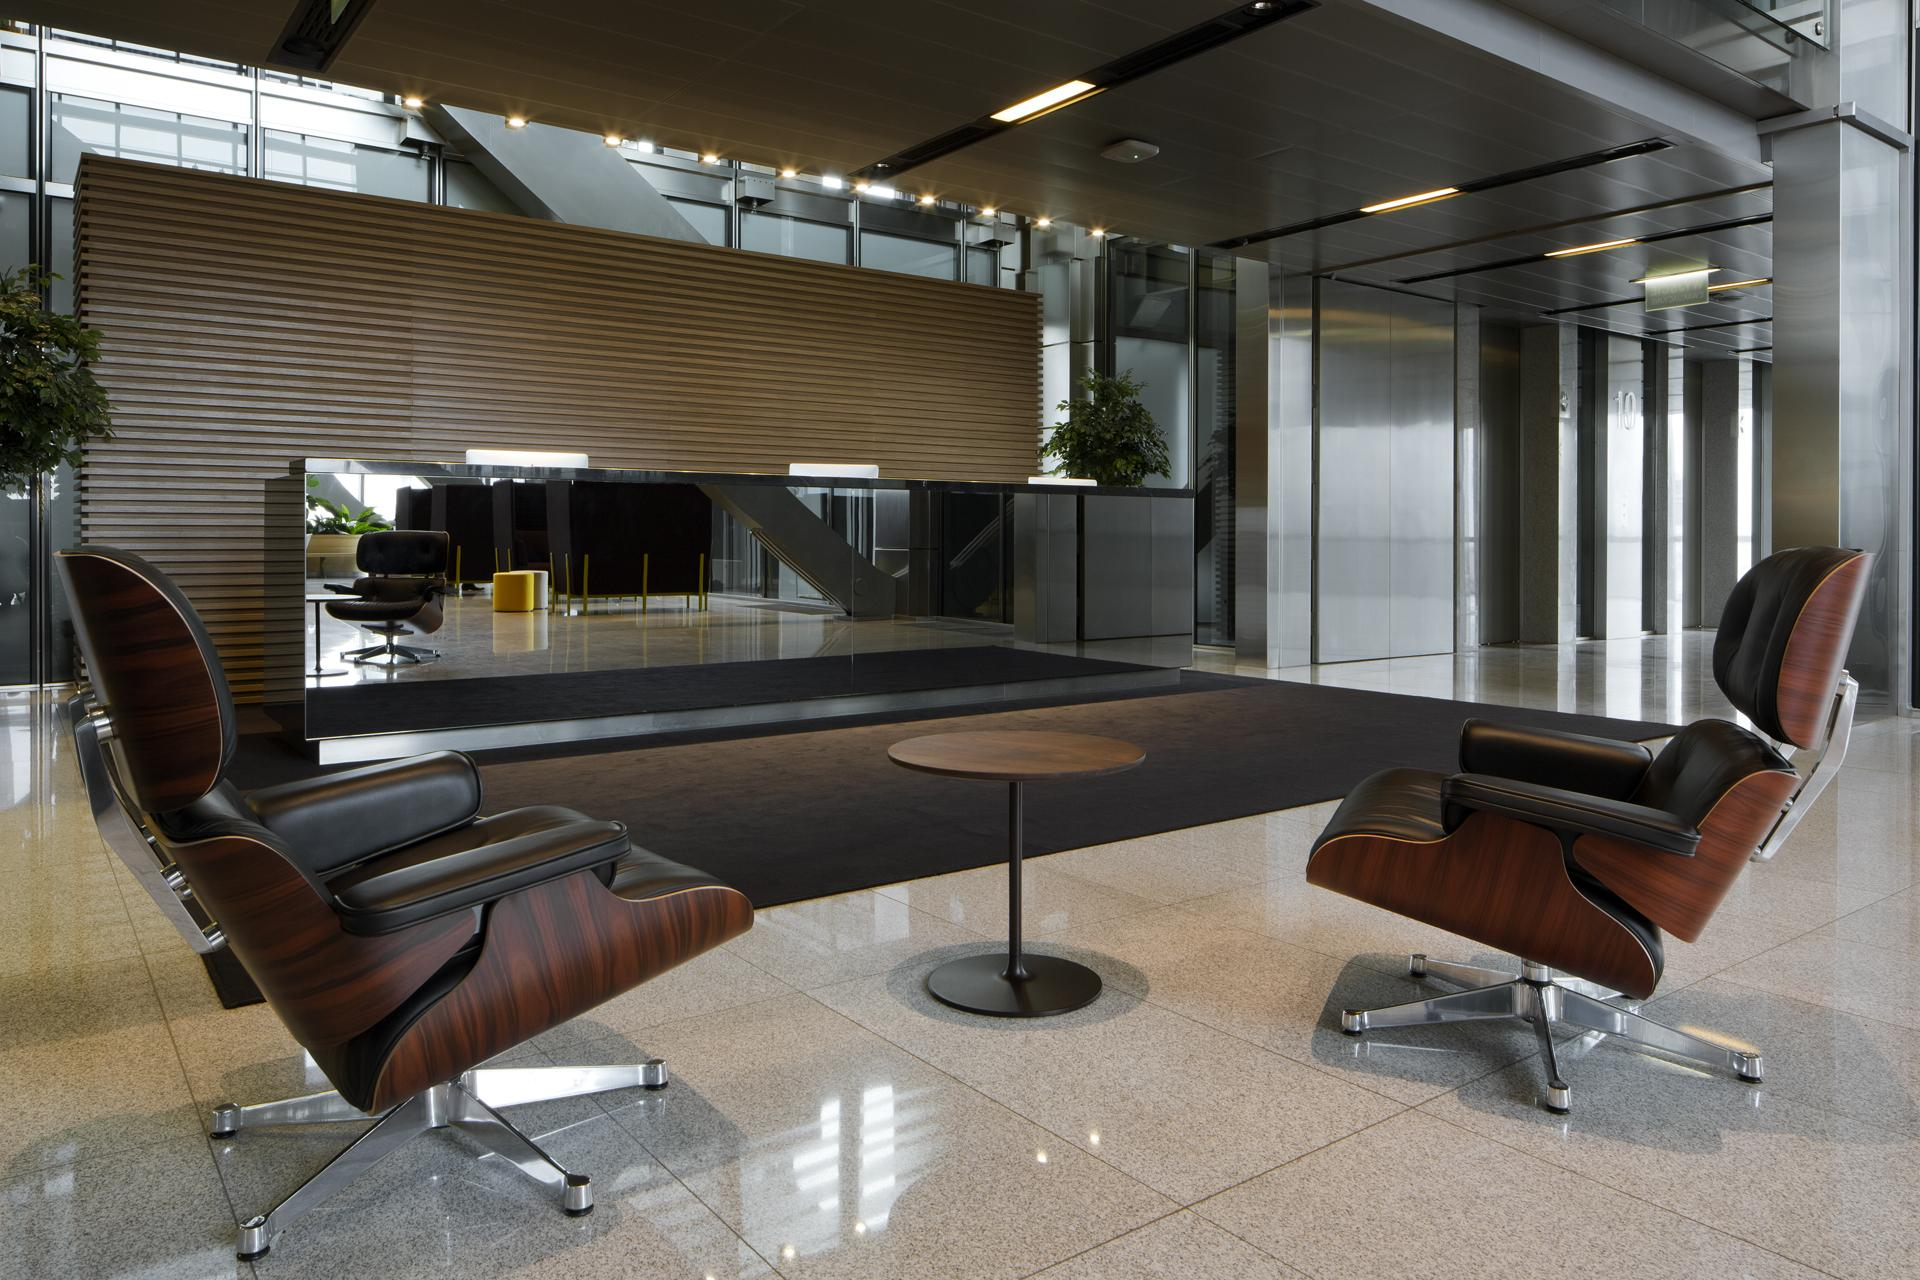 Rondo 1, CitySpace - Serviced Office - Warsaw